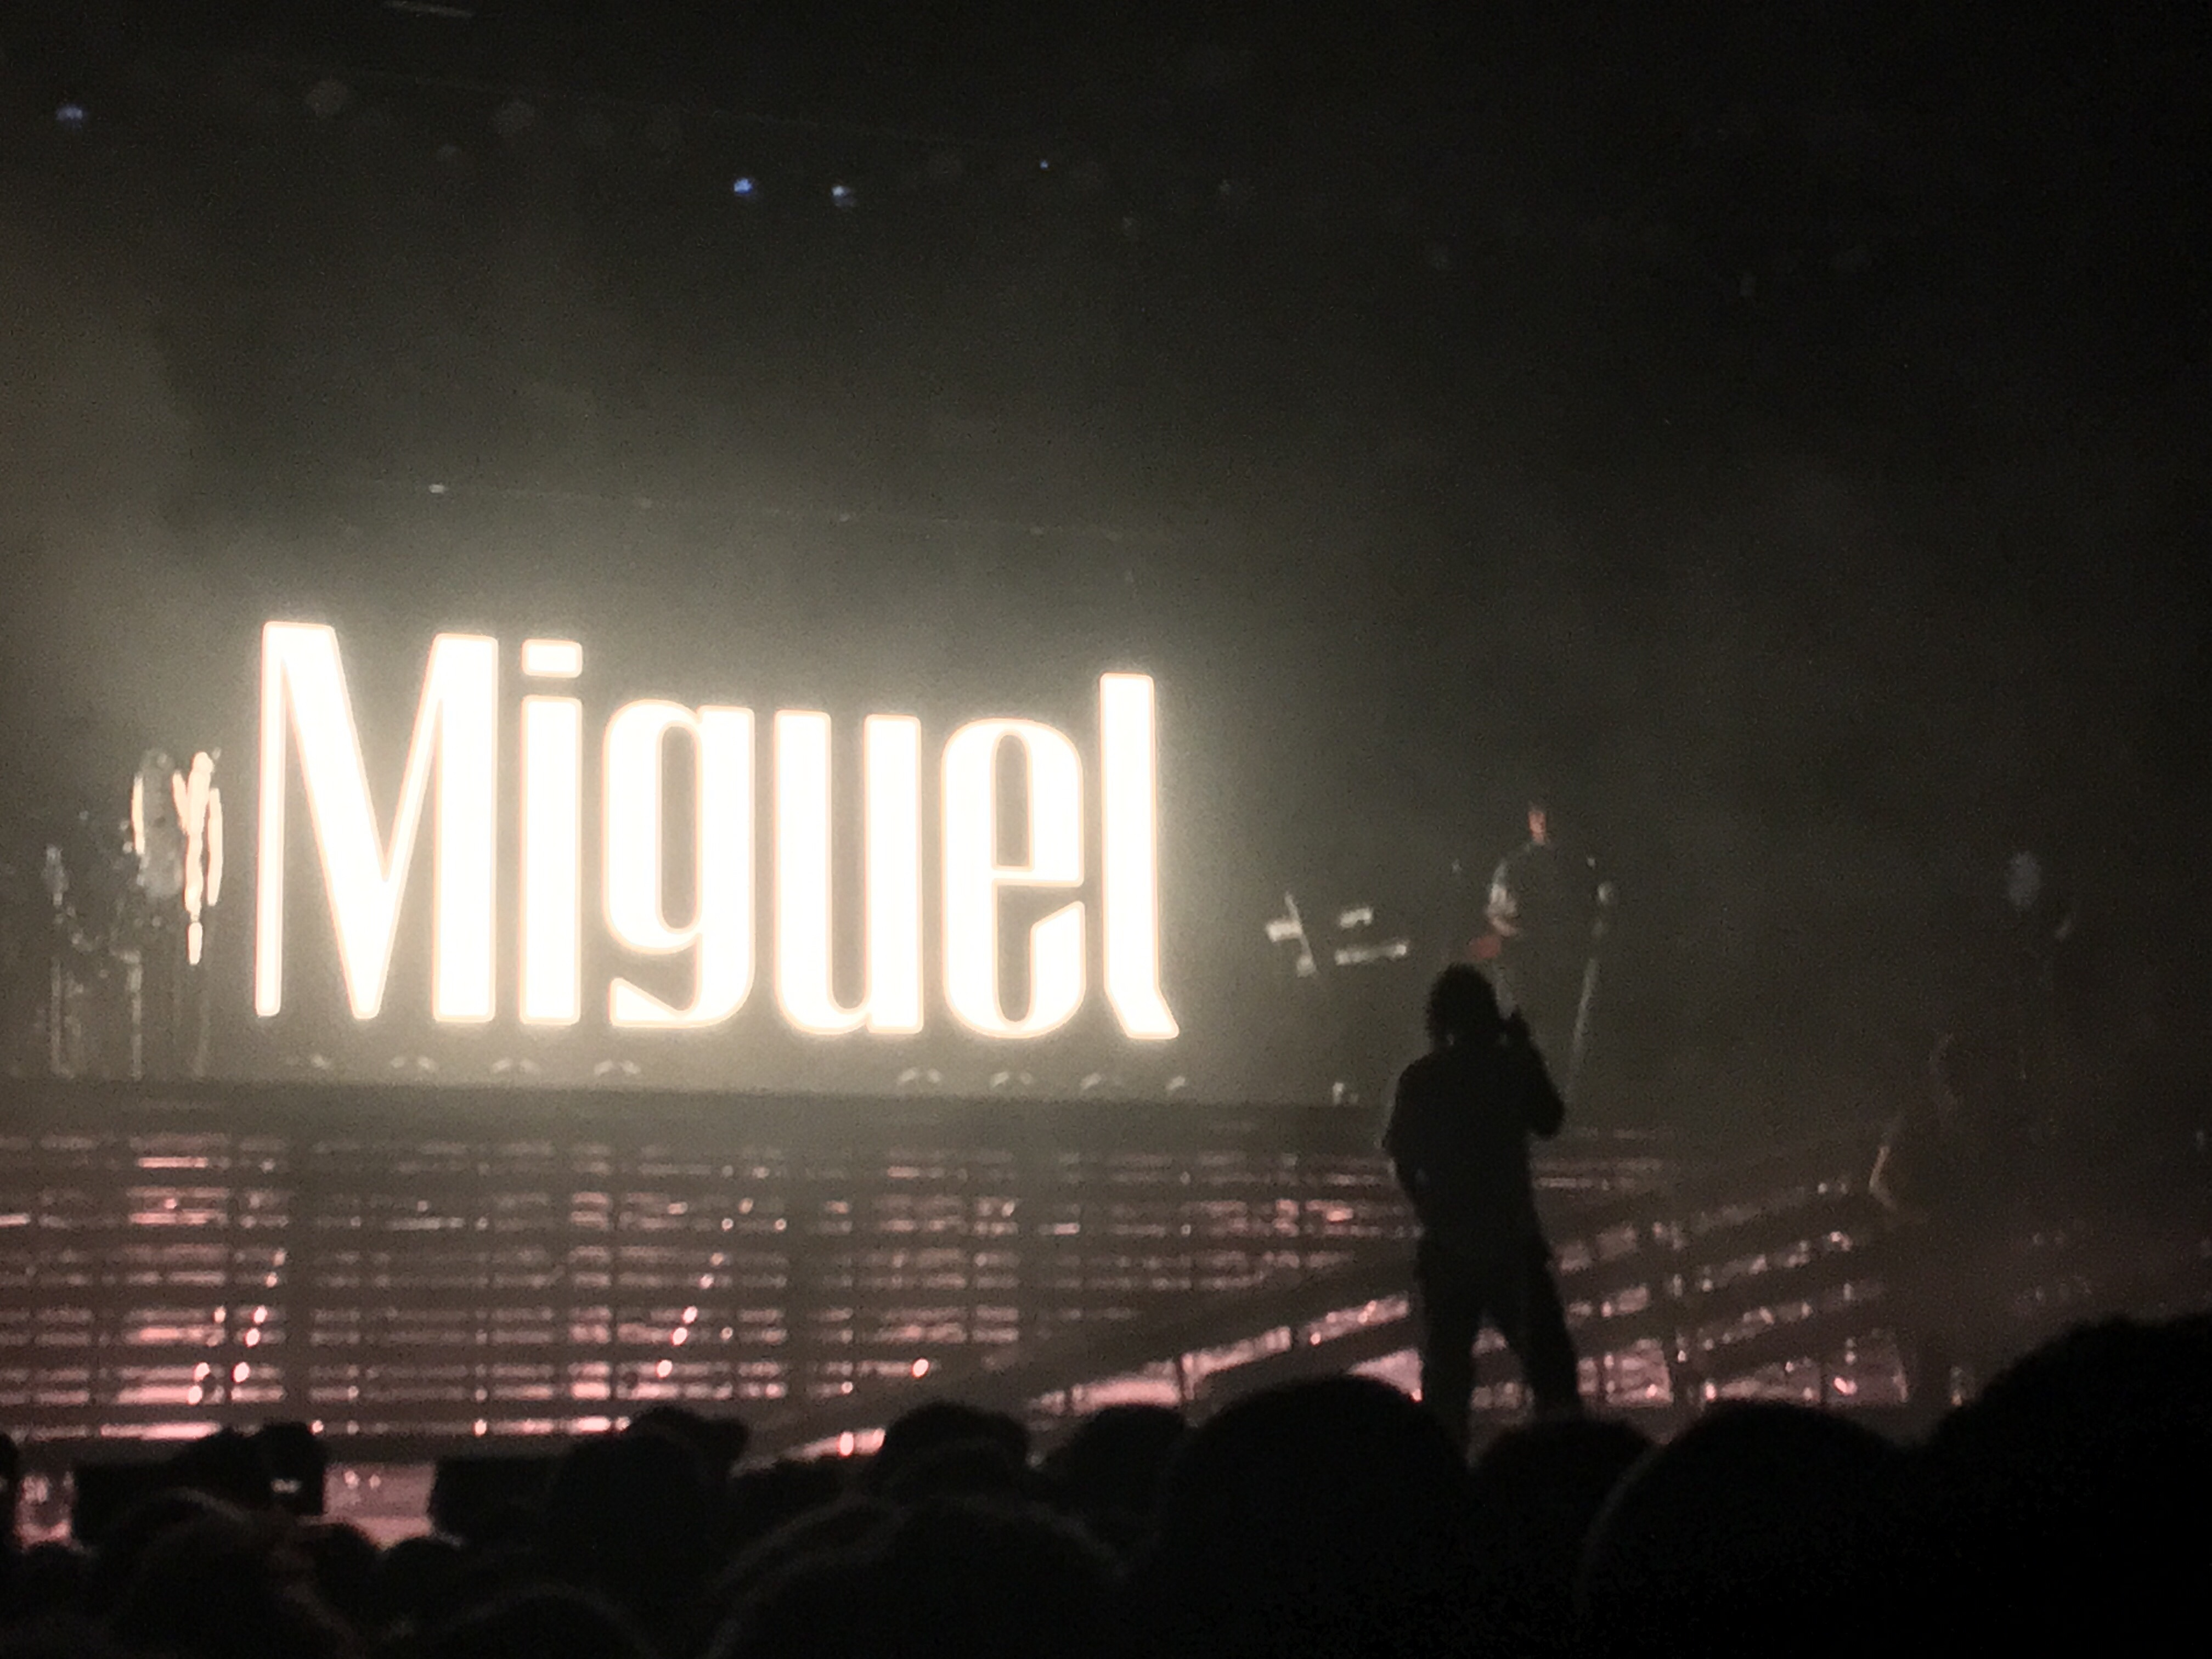 Still from the Miguel concert with his name in the background and the artist outlined in shadow